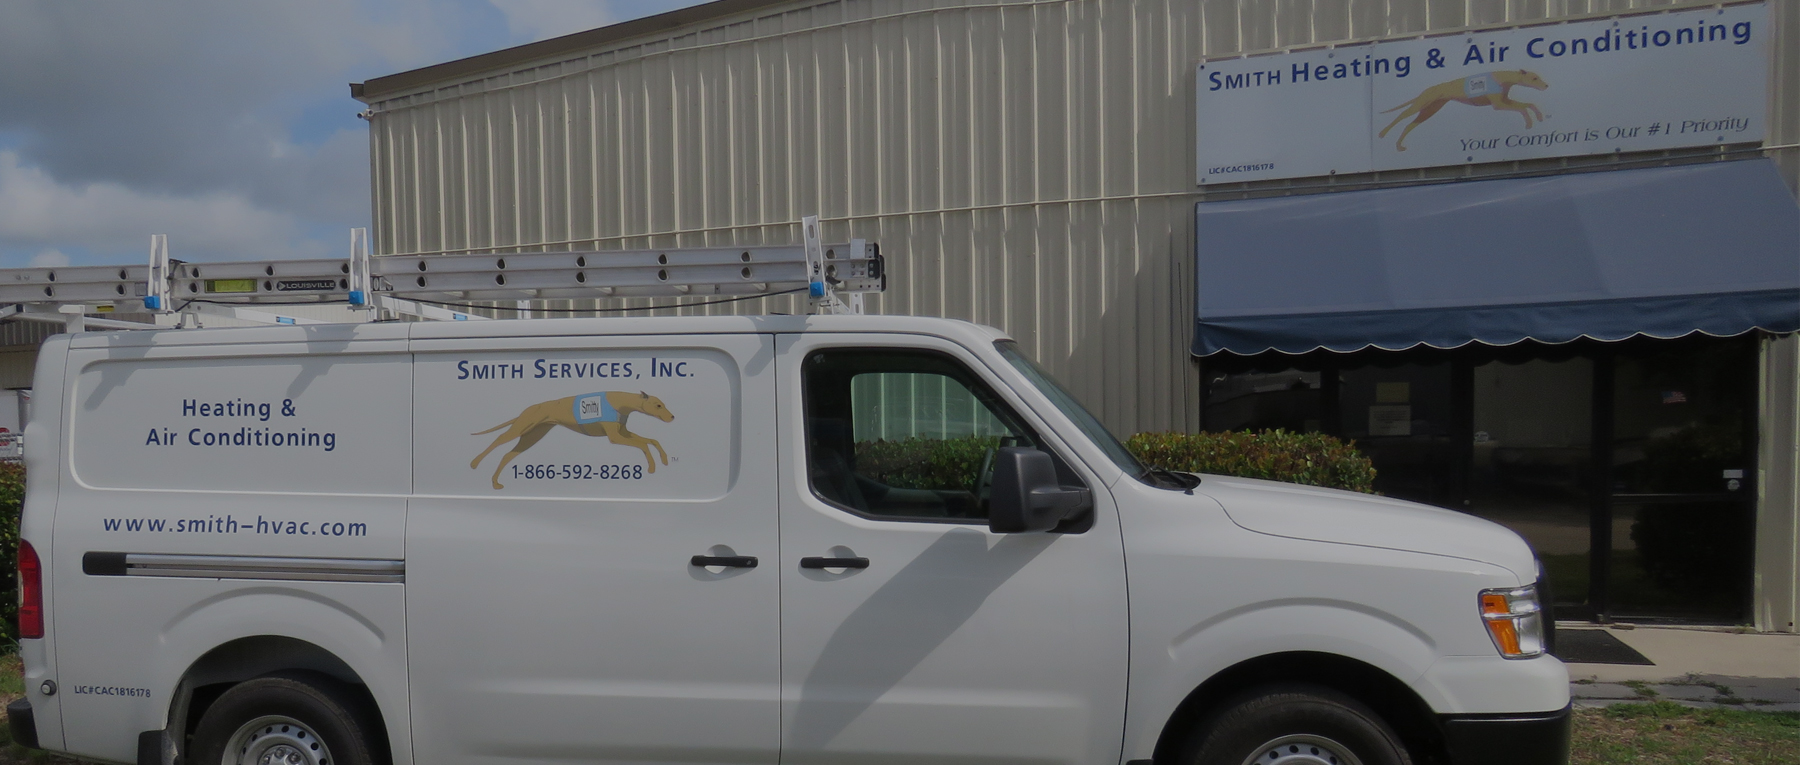 Smith Heating and Air Conditioning